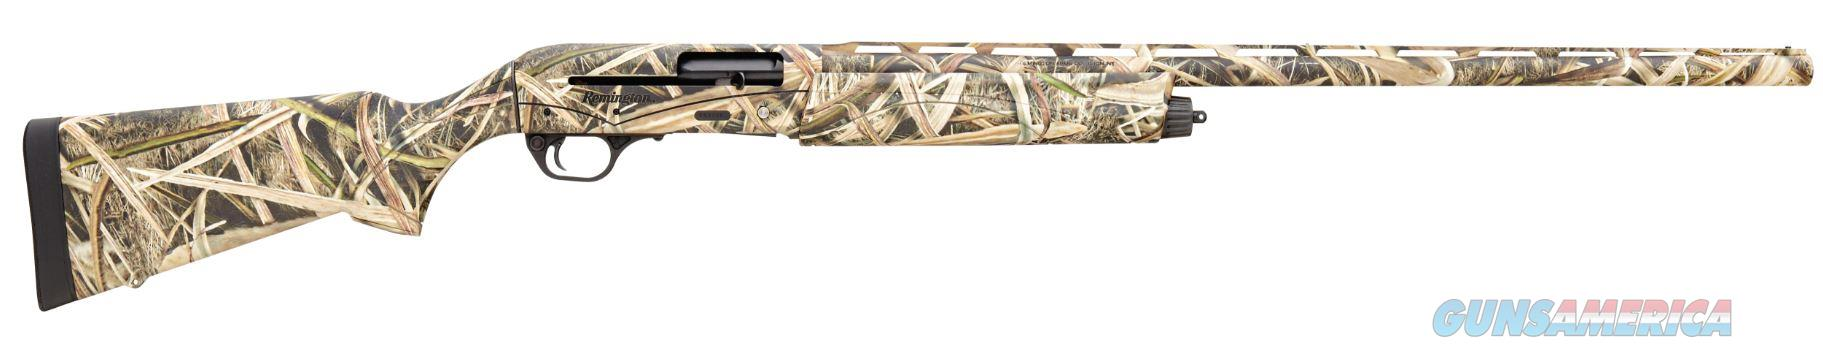 "Remington V3 Field Sport 12 ga 28"" Mossy Oak Blades - New in Box  Guns > Shotguns > Remington Shotguns  > Autoloaders > Hunting"